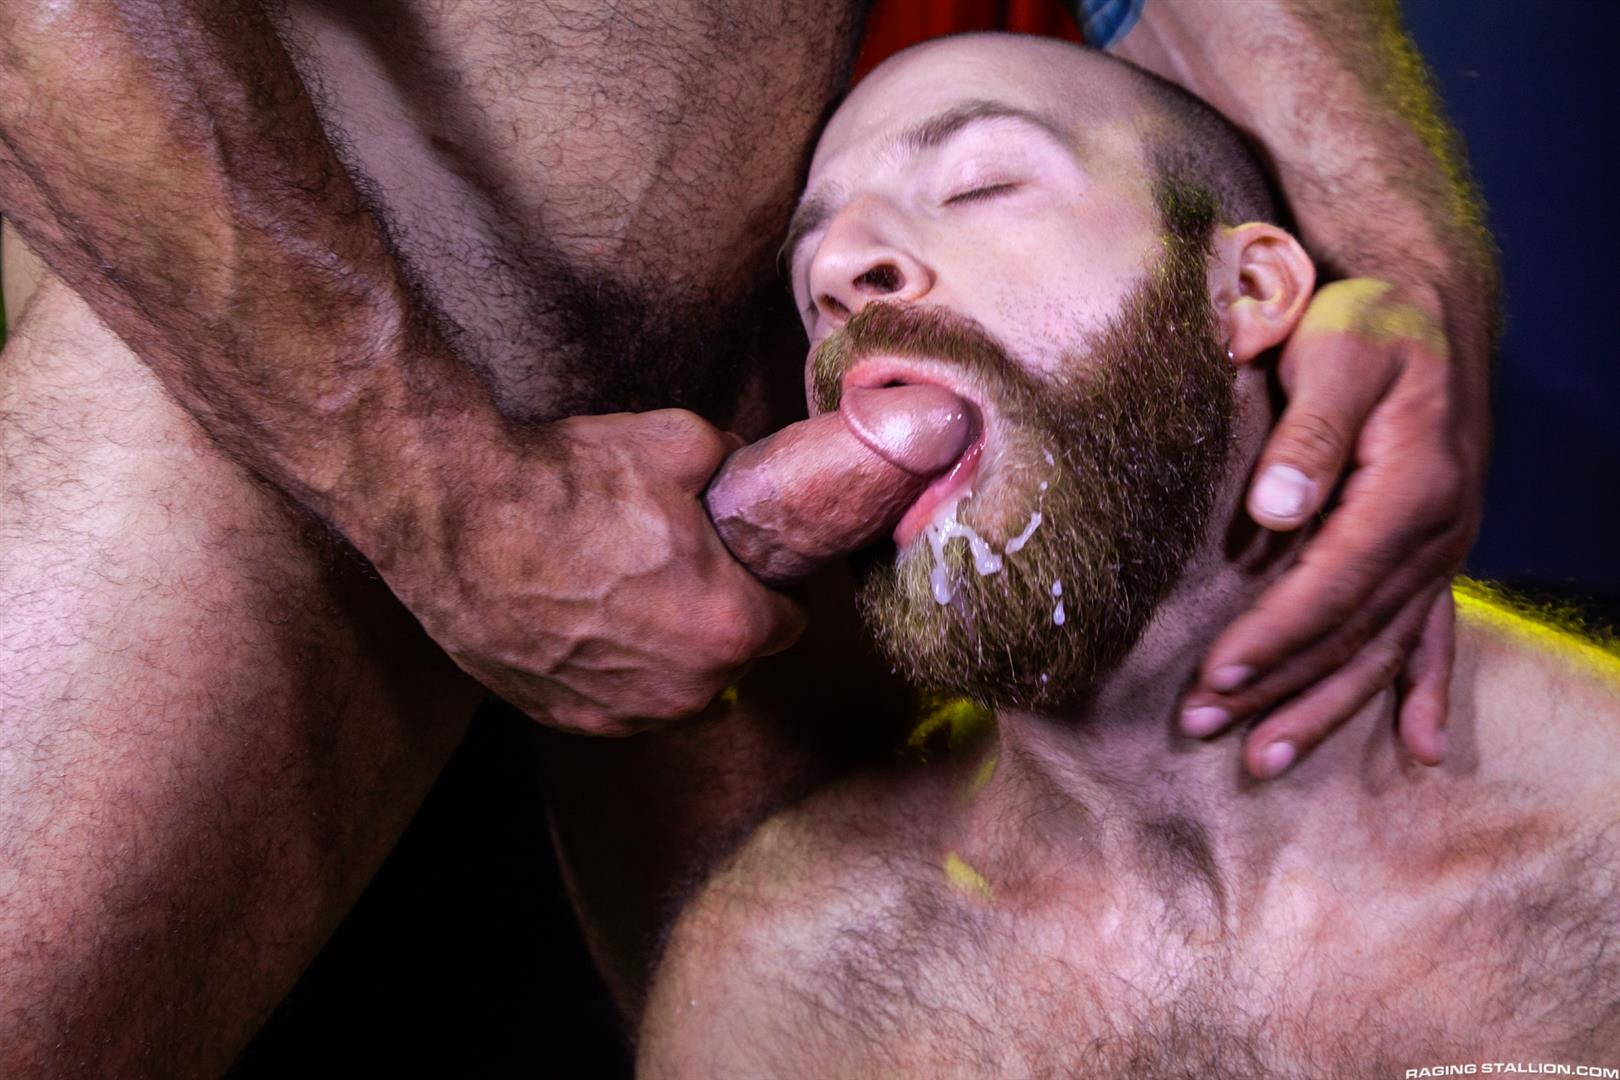 Raging-Stallion-Drake-Masters-and-James-Stevens-hairy-guys-cum-facial-14 Hairy Muscle Bear Drake Masters and Otter James Stevens Swap Cum Facials